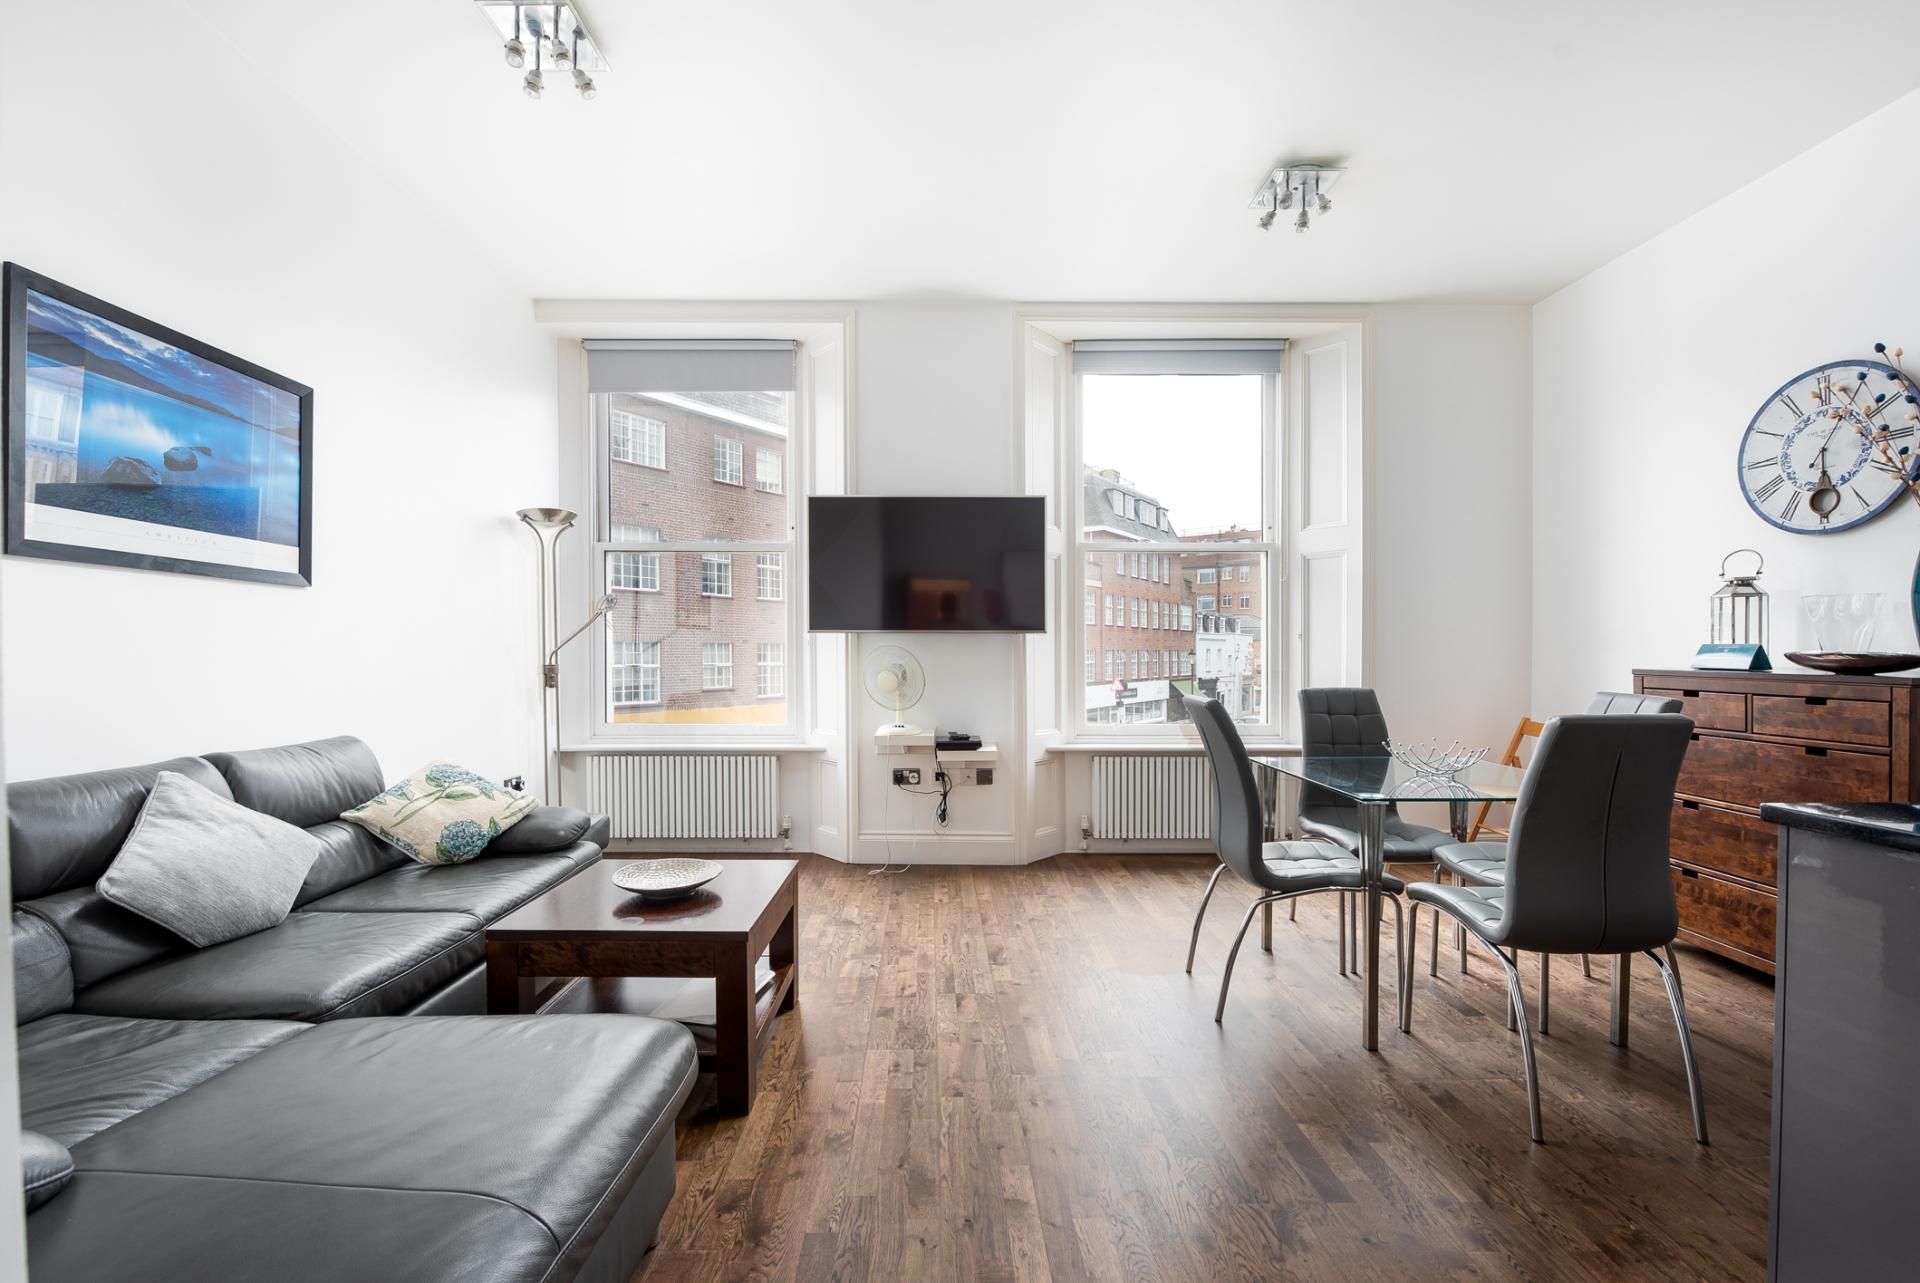 Bright living space at Chelsea Green Apartments, Chelsea, London - Citybase Apartments